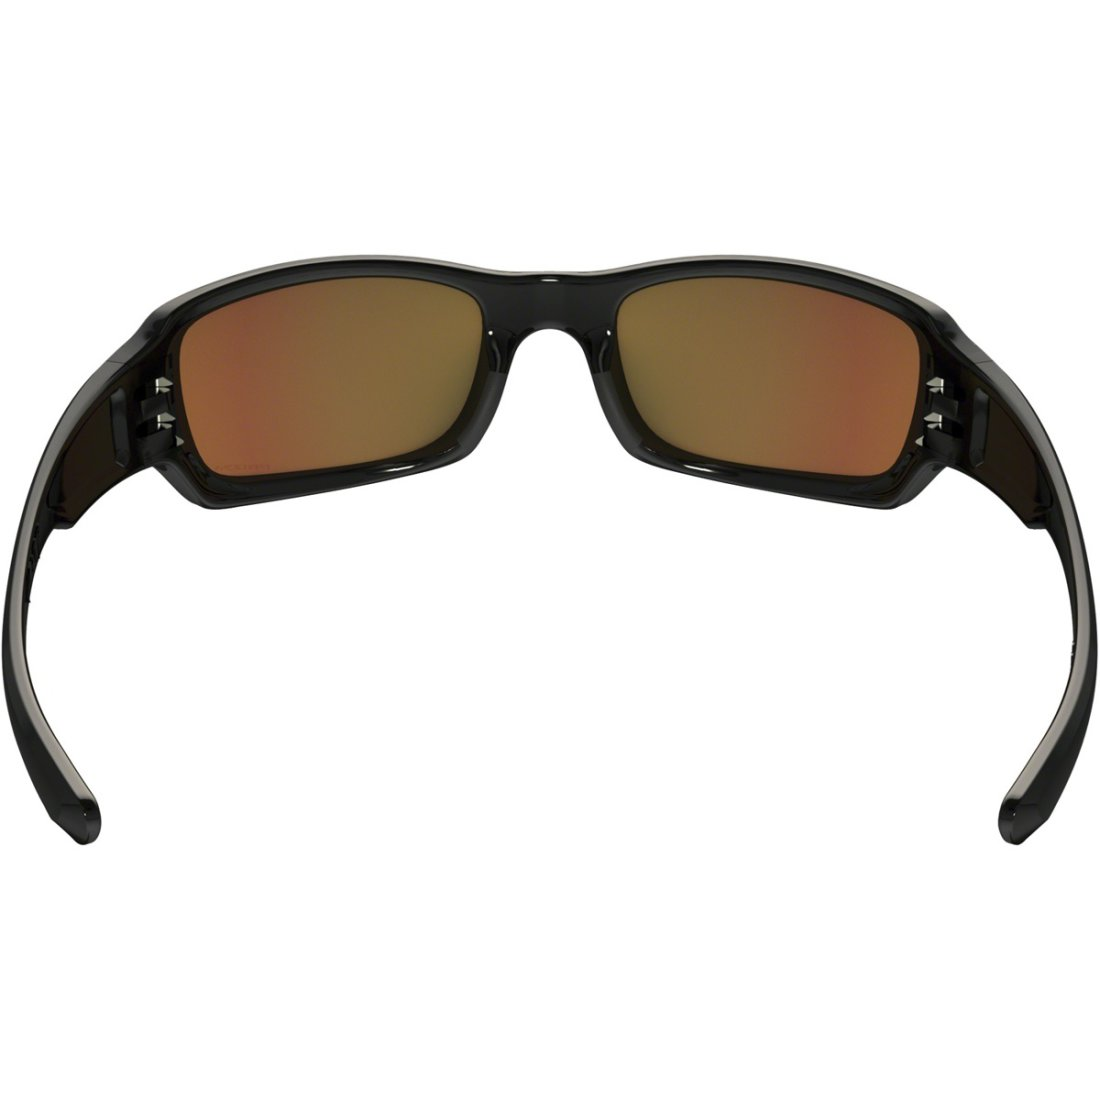 3ba54c1dceb20 Lunettes de soleil OAKLEY Fives Squared Polished Black   Prizm Shallow  Water Polarized